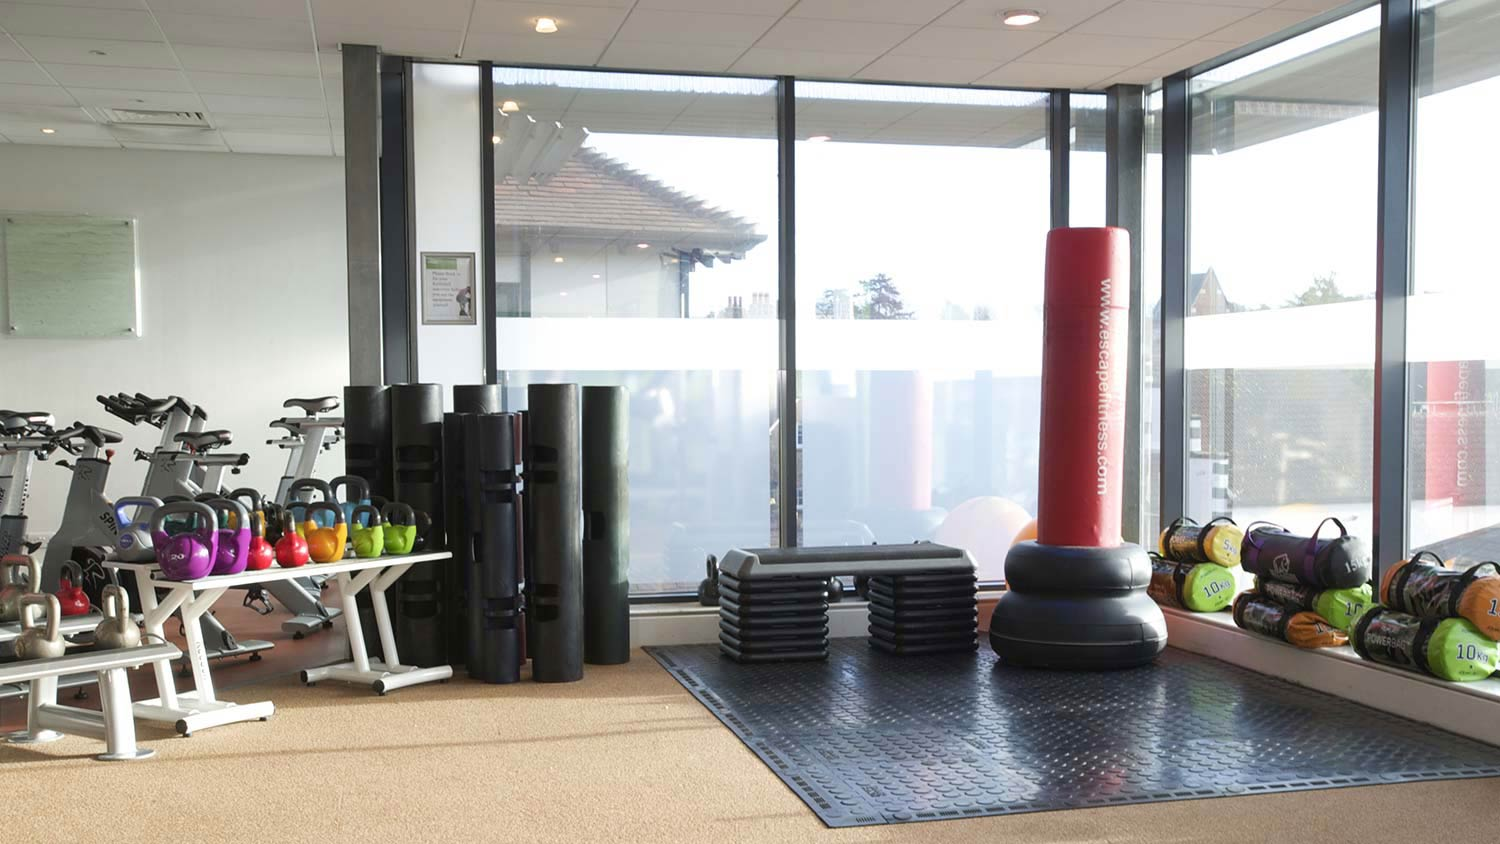 Leatherhead Fitness & Wellbeing Gym